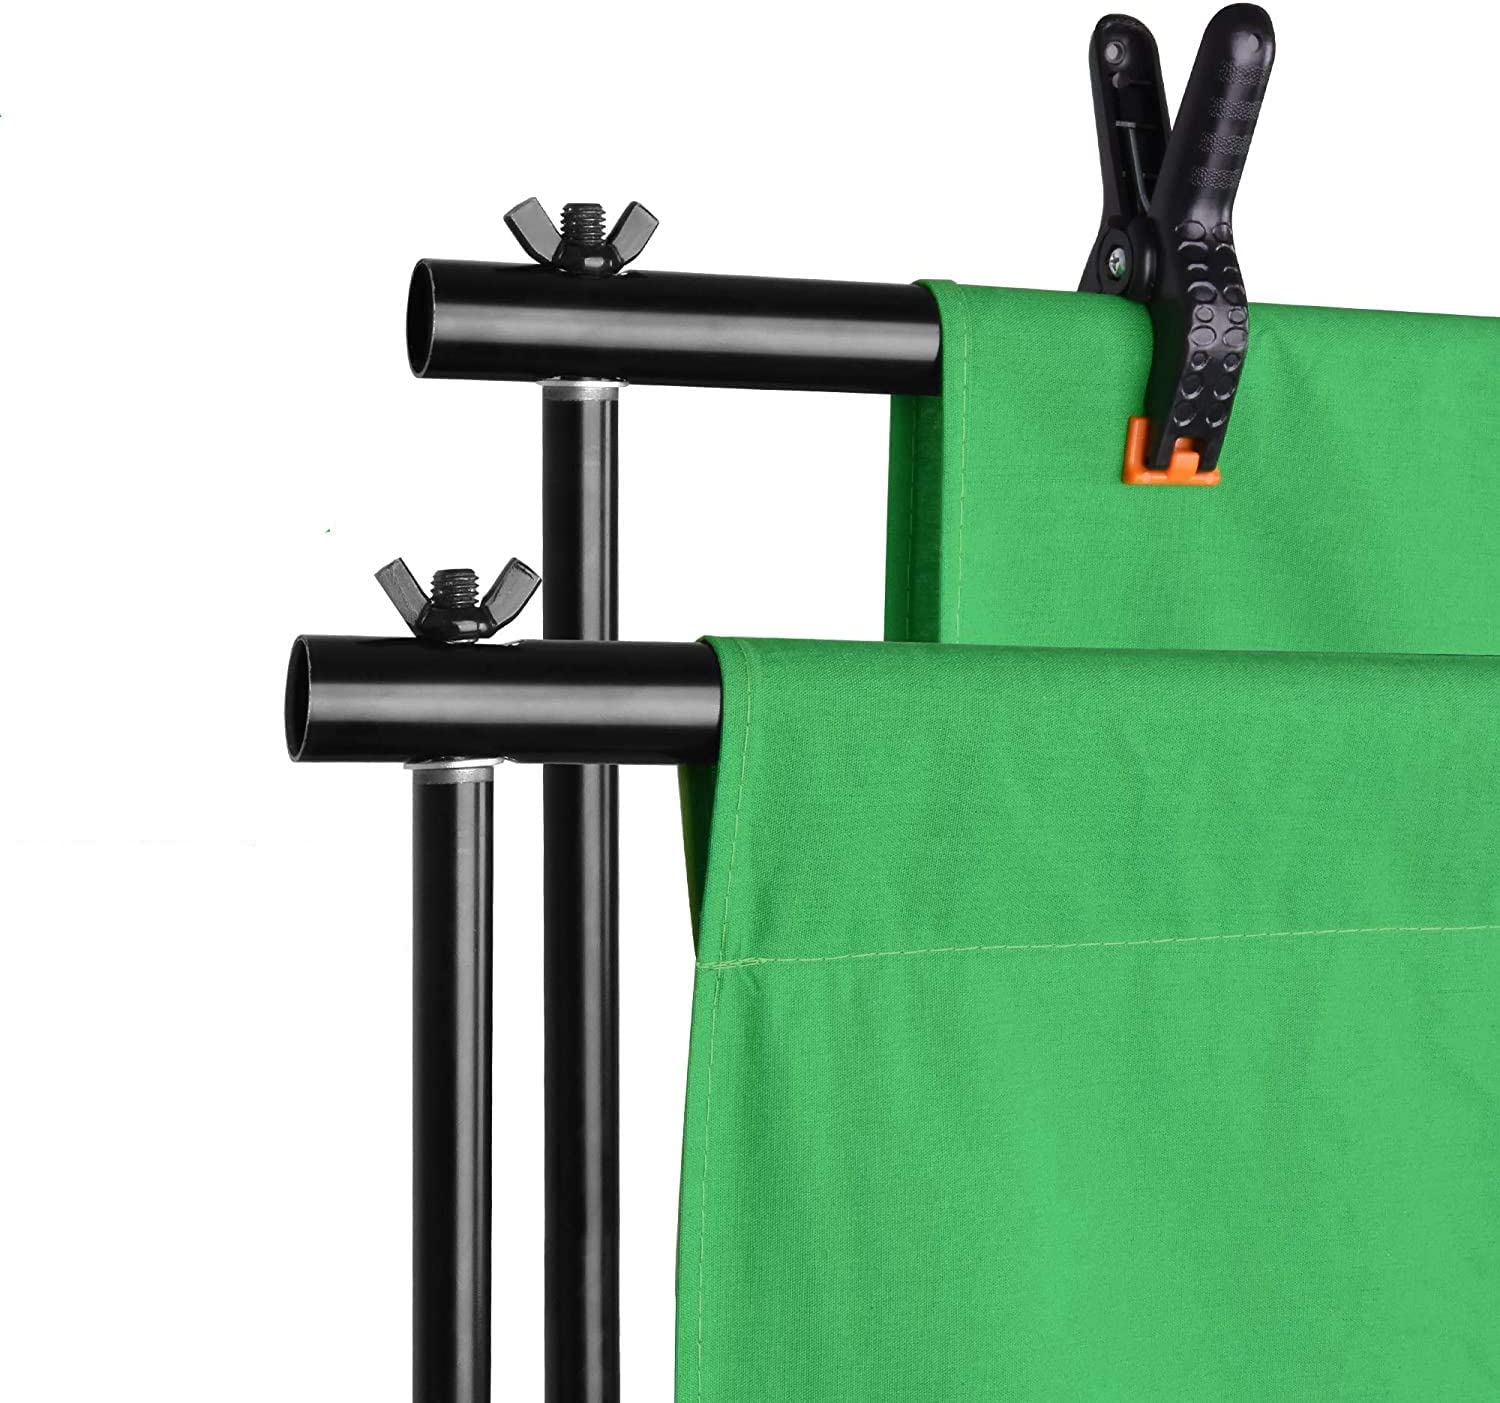 Photo Studio Clamps Clips 6.5 x 6.5ft Photography Background Support System with 6.5 x 10ft Cotton Muslin Chromakey Backdrop Selens Green Screen Backdrop Stand Kit